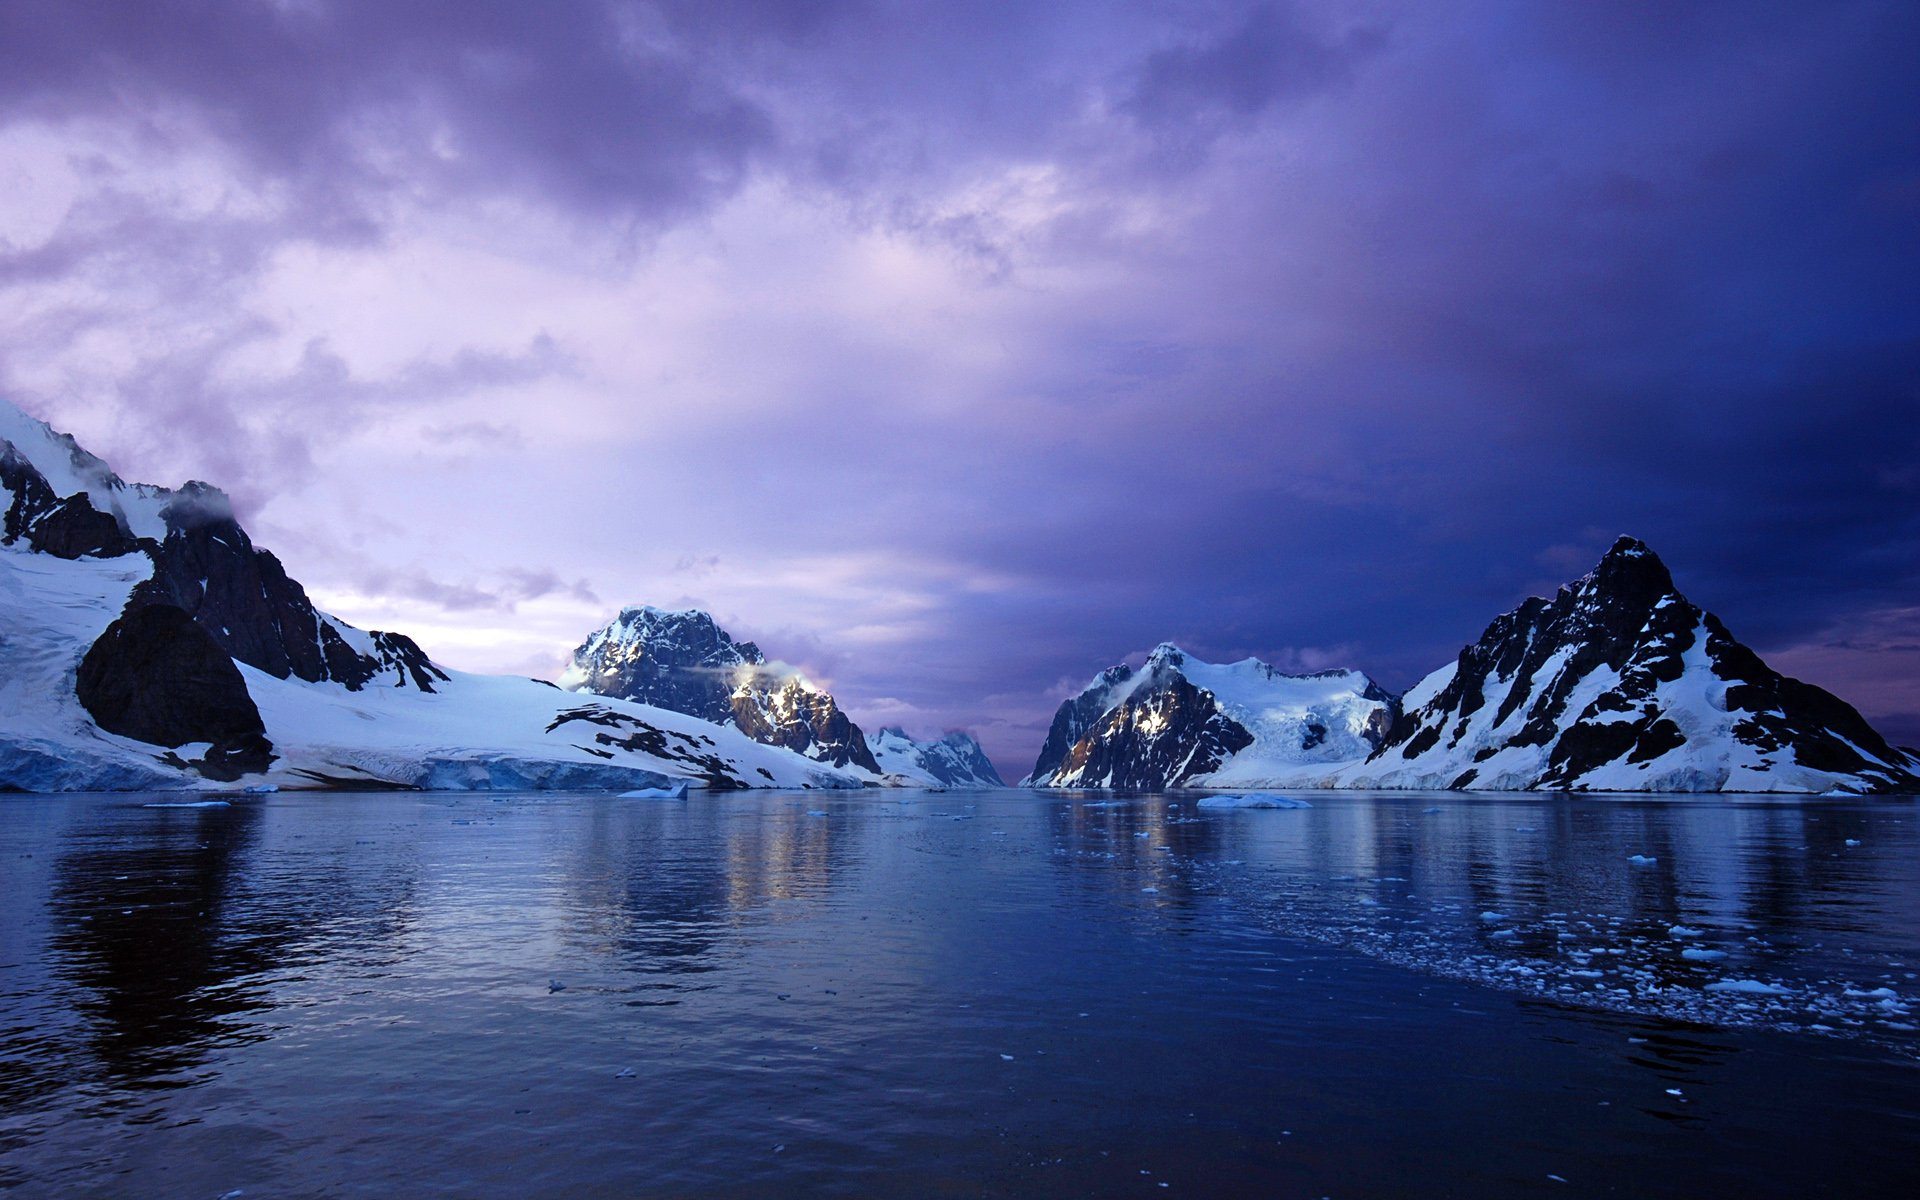 Antarctica High Definition Wallpaper   Travel HD Wallpapers 1920x1200